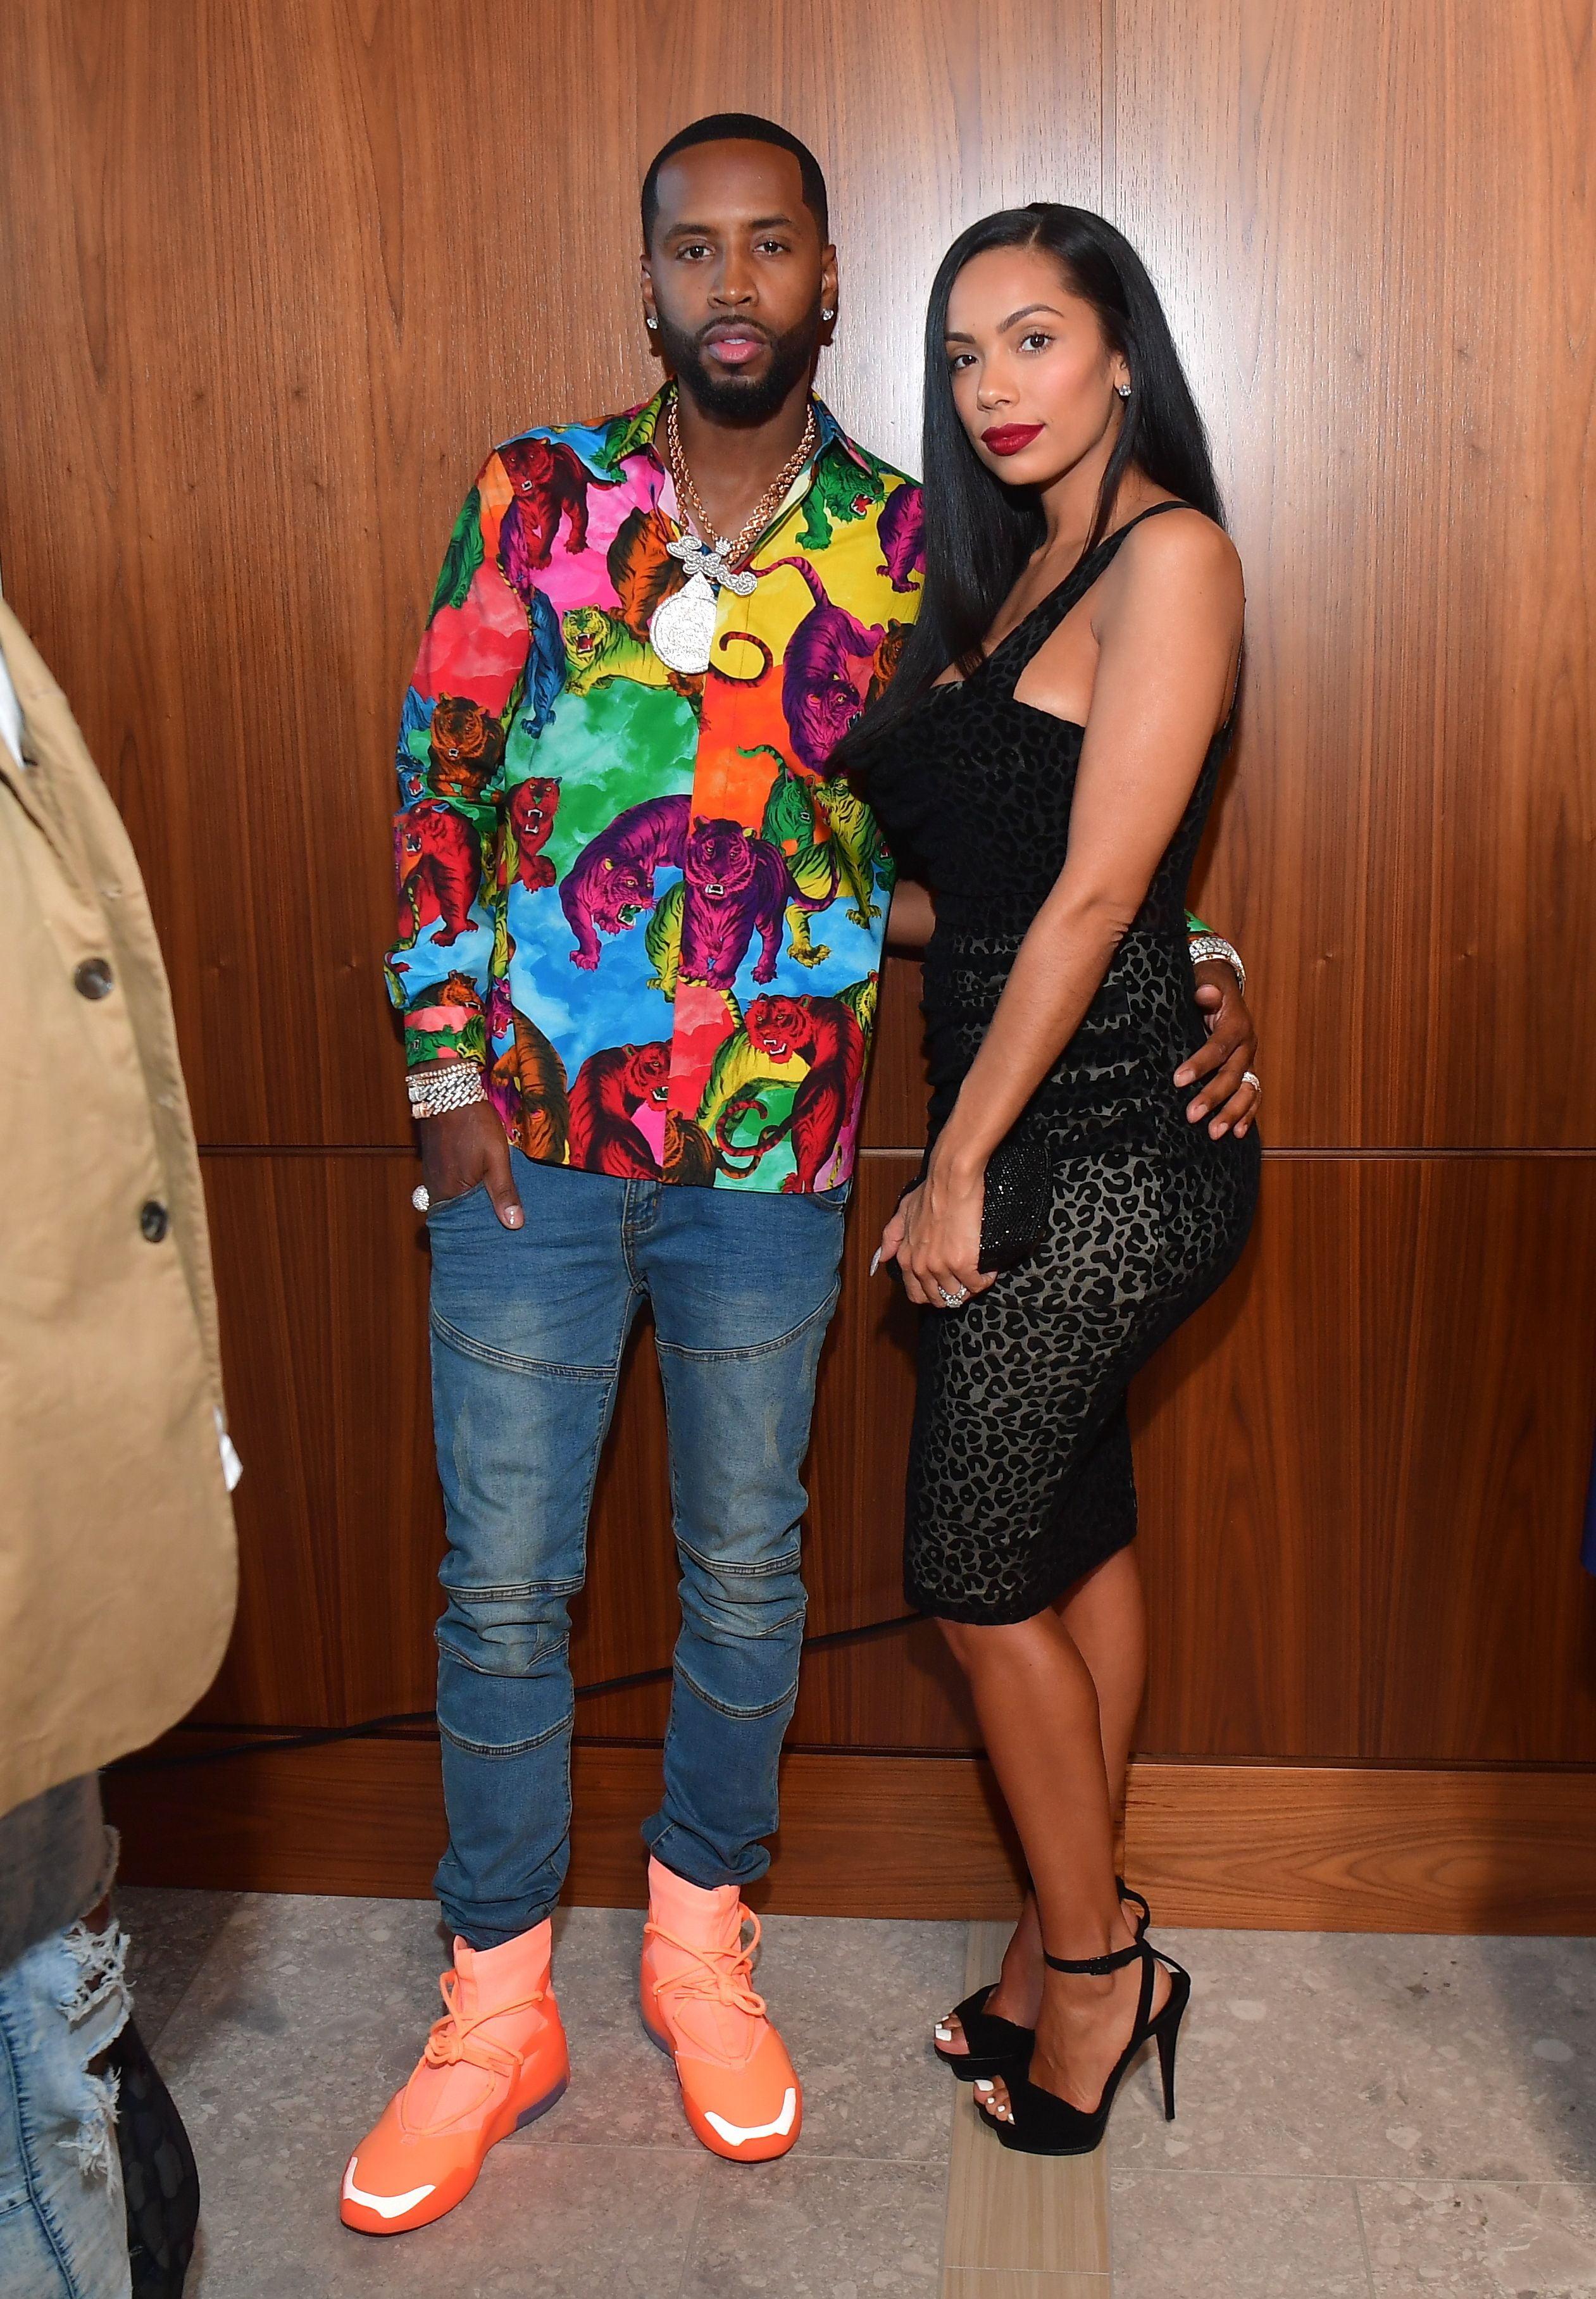 Safaree Samuels and Erica Mena at the 2019 BMI R&B/Hip-Hop Awards at Sandy Springs Performing Arts Center on August 29, 2019 | Photo: Getty Images